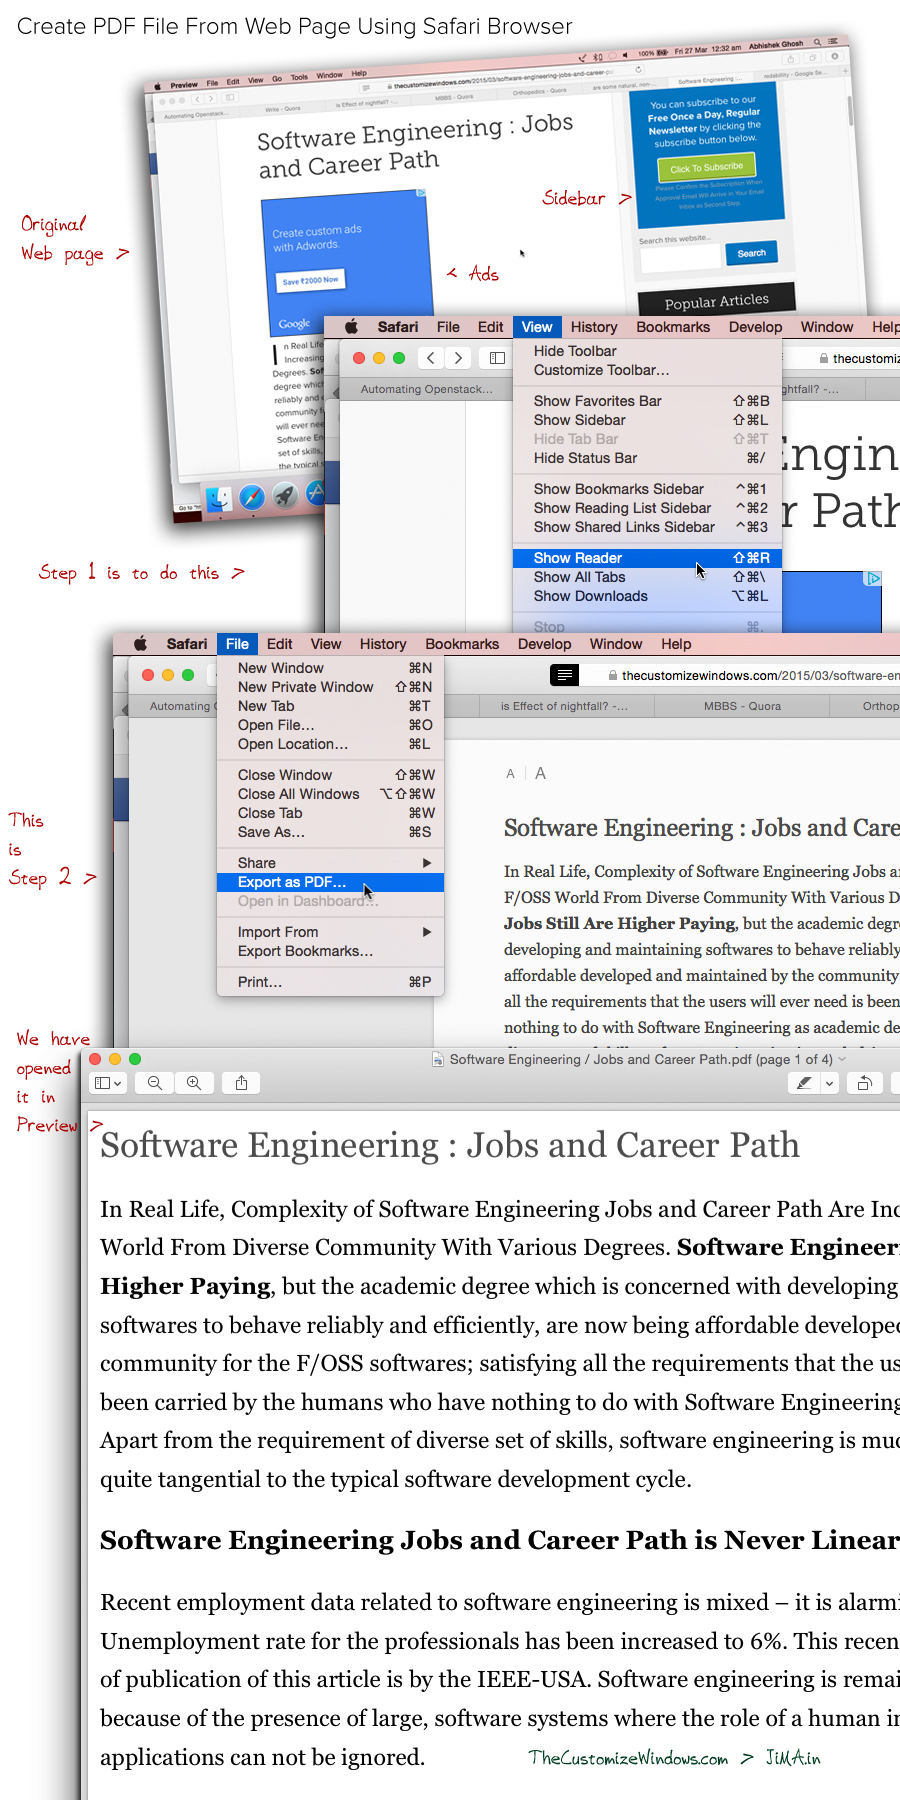 Create-PDF-File-From-Web-Page-Using-Safari-Browser